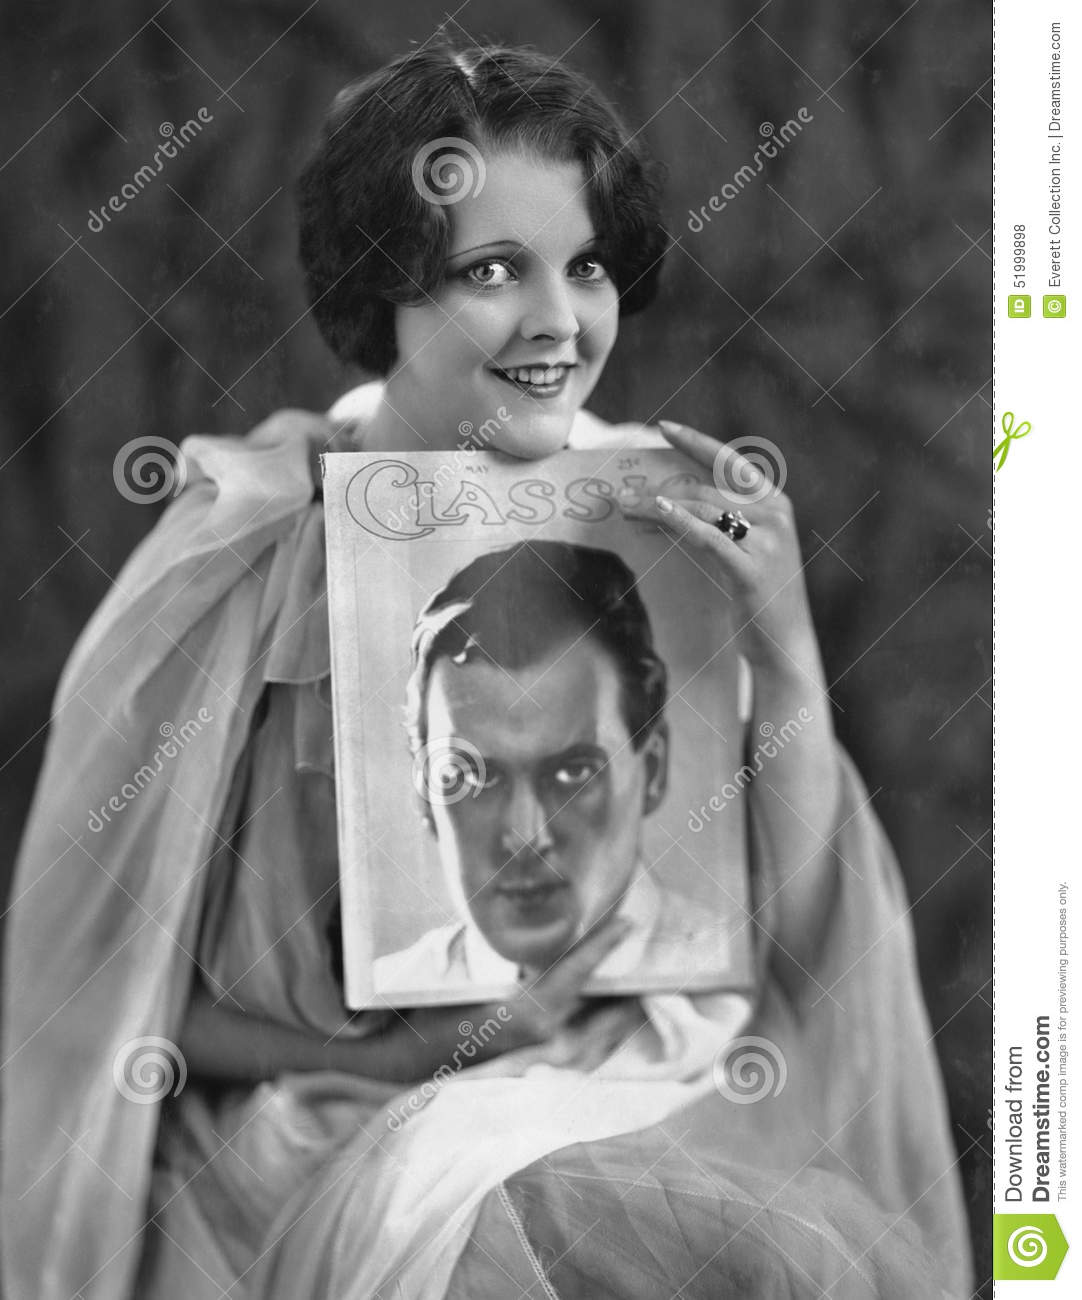 Woman with portrait of man on magazine cover